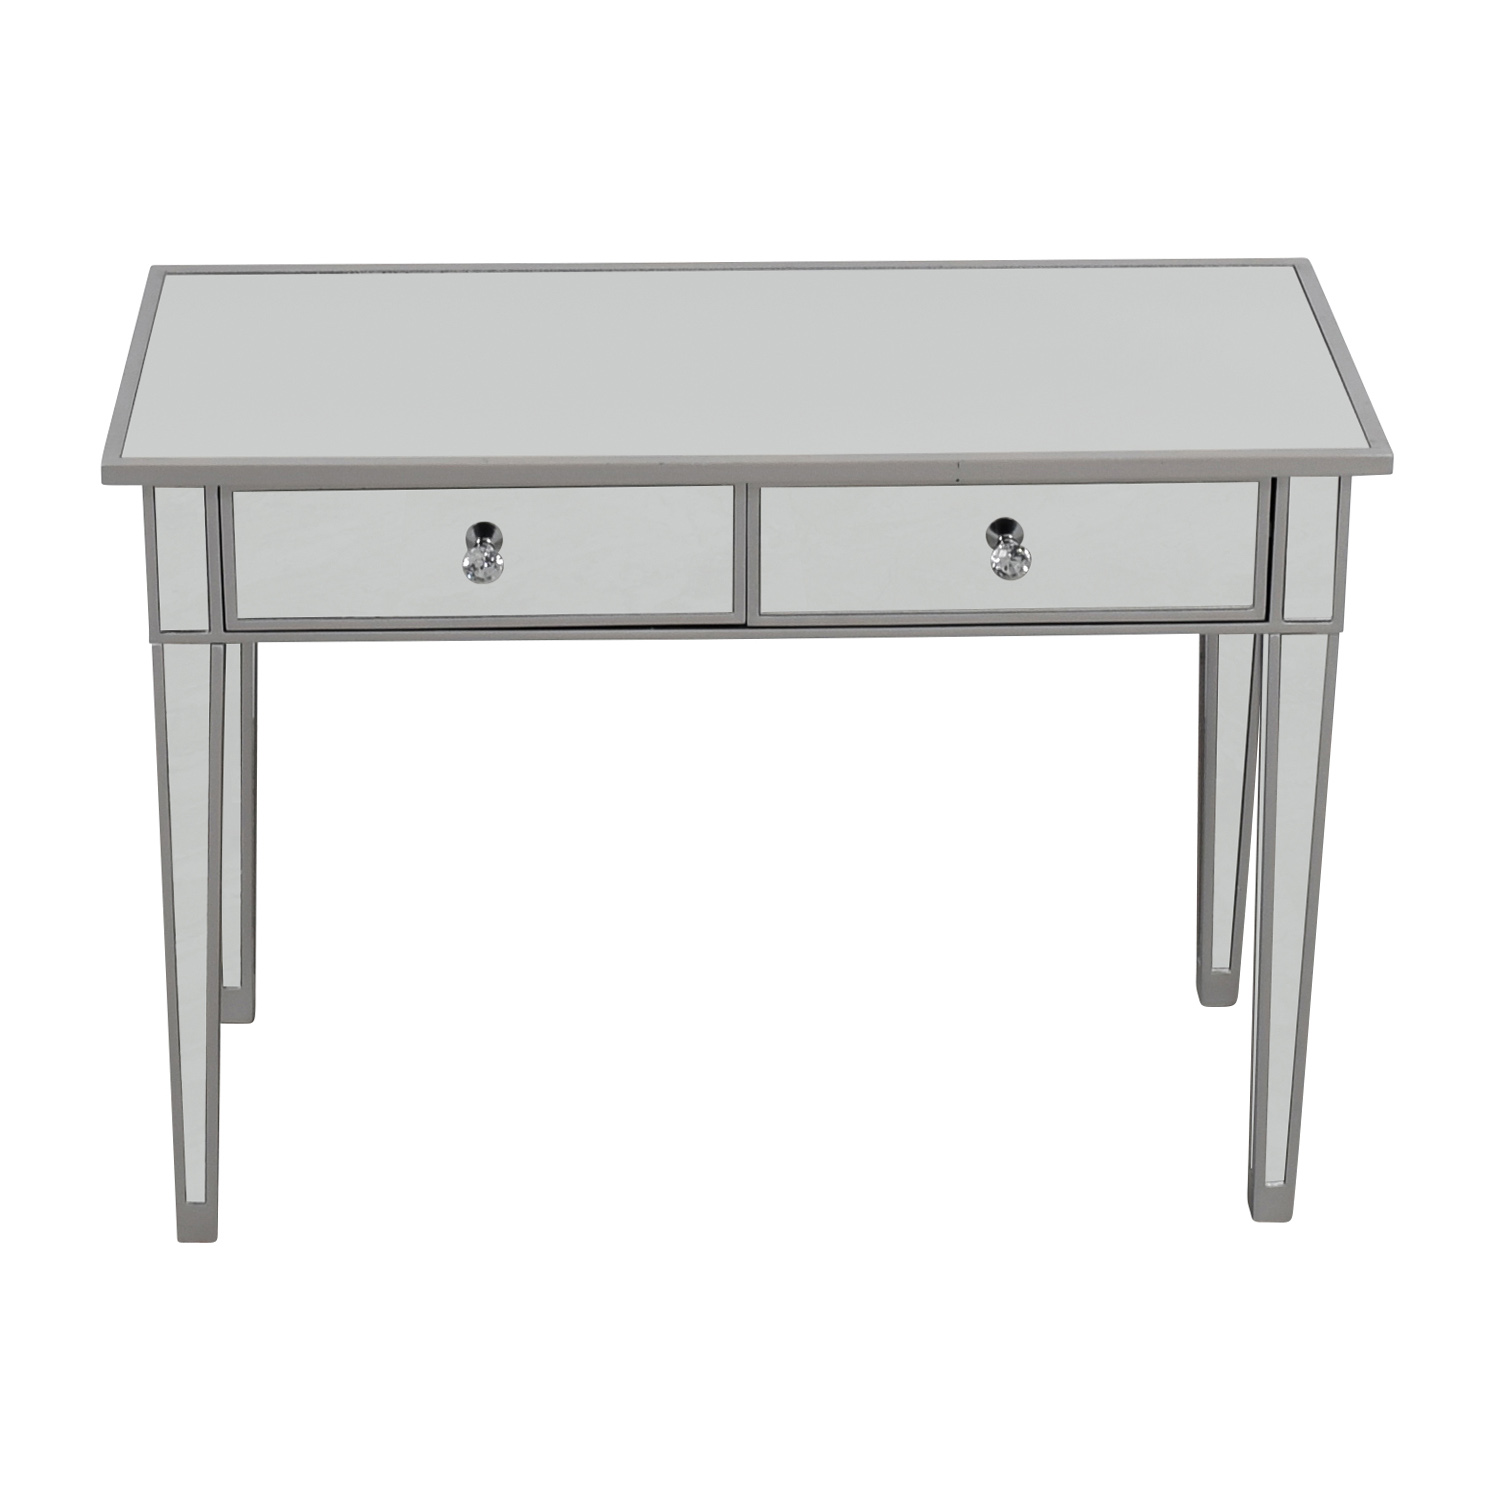 ikea galant desk drawer instructions